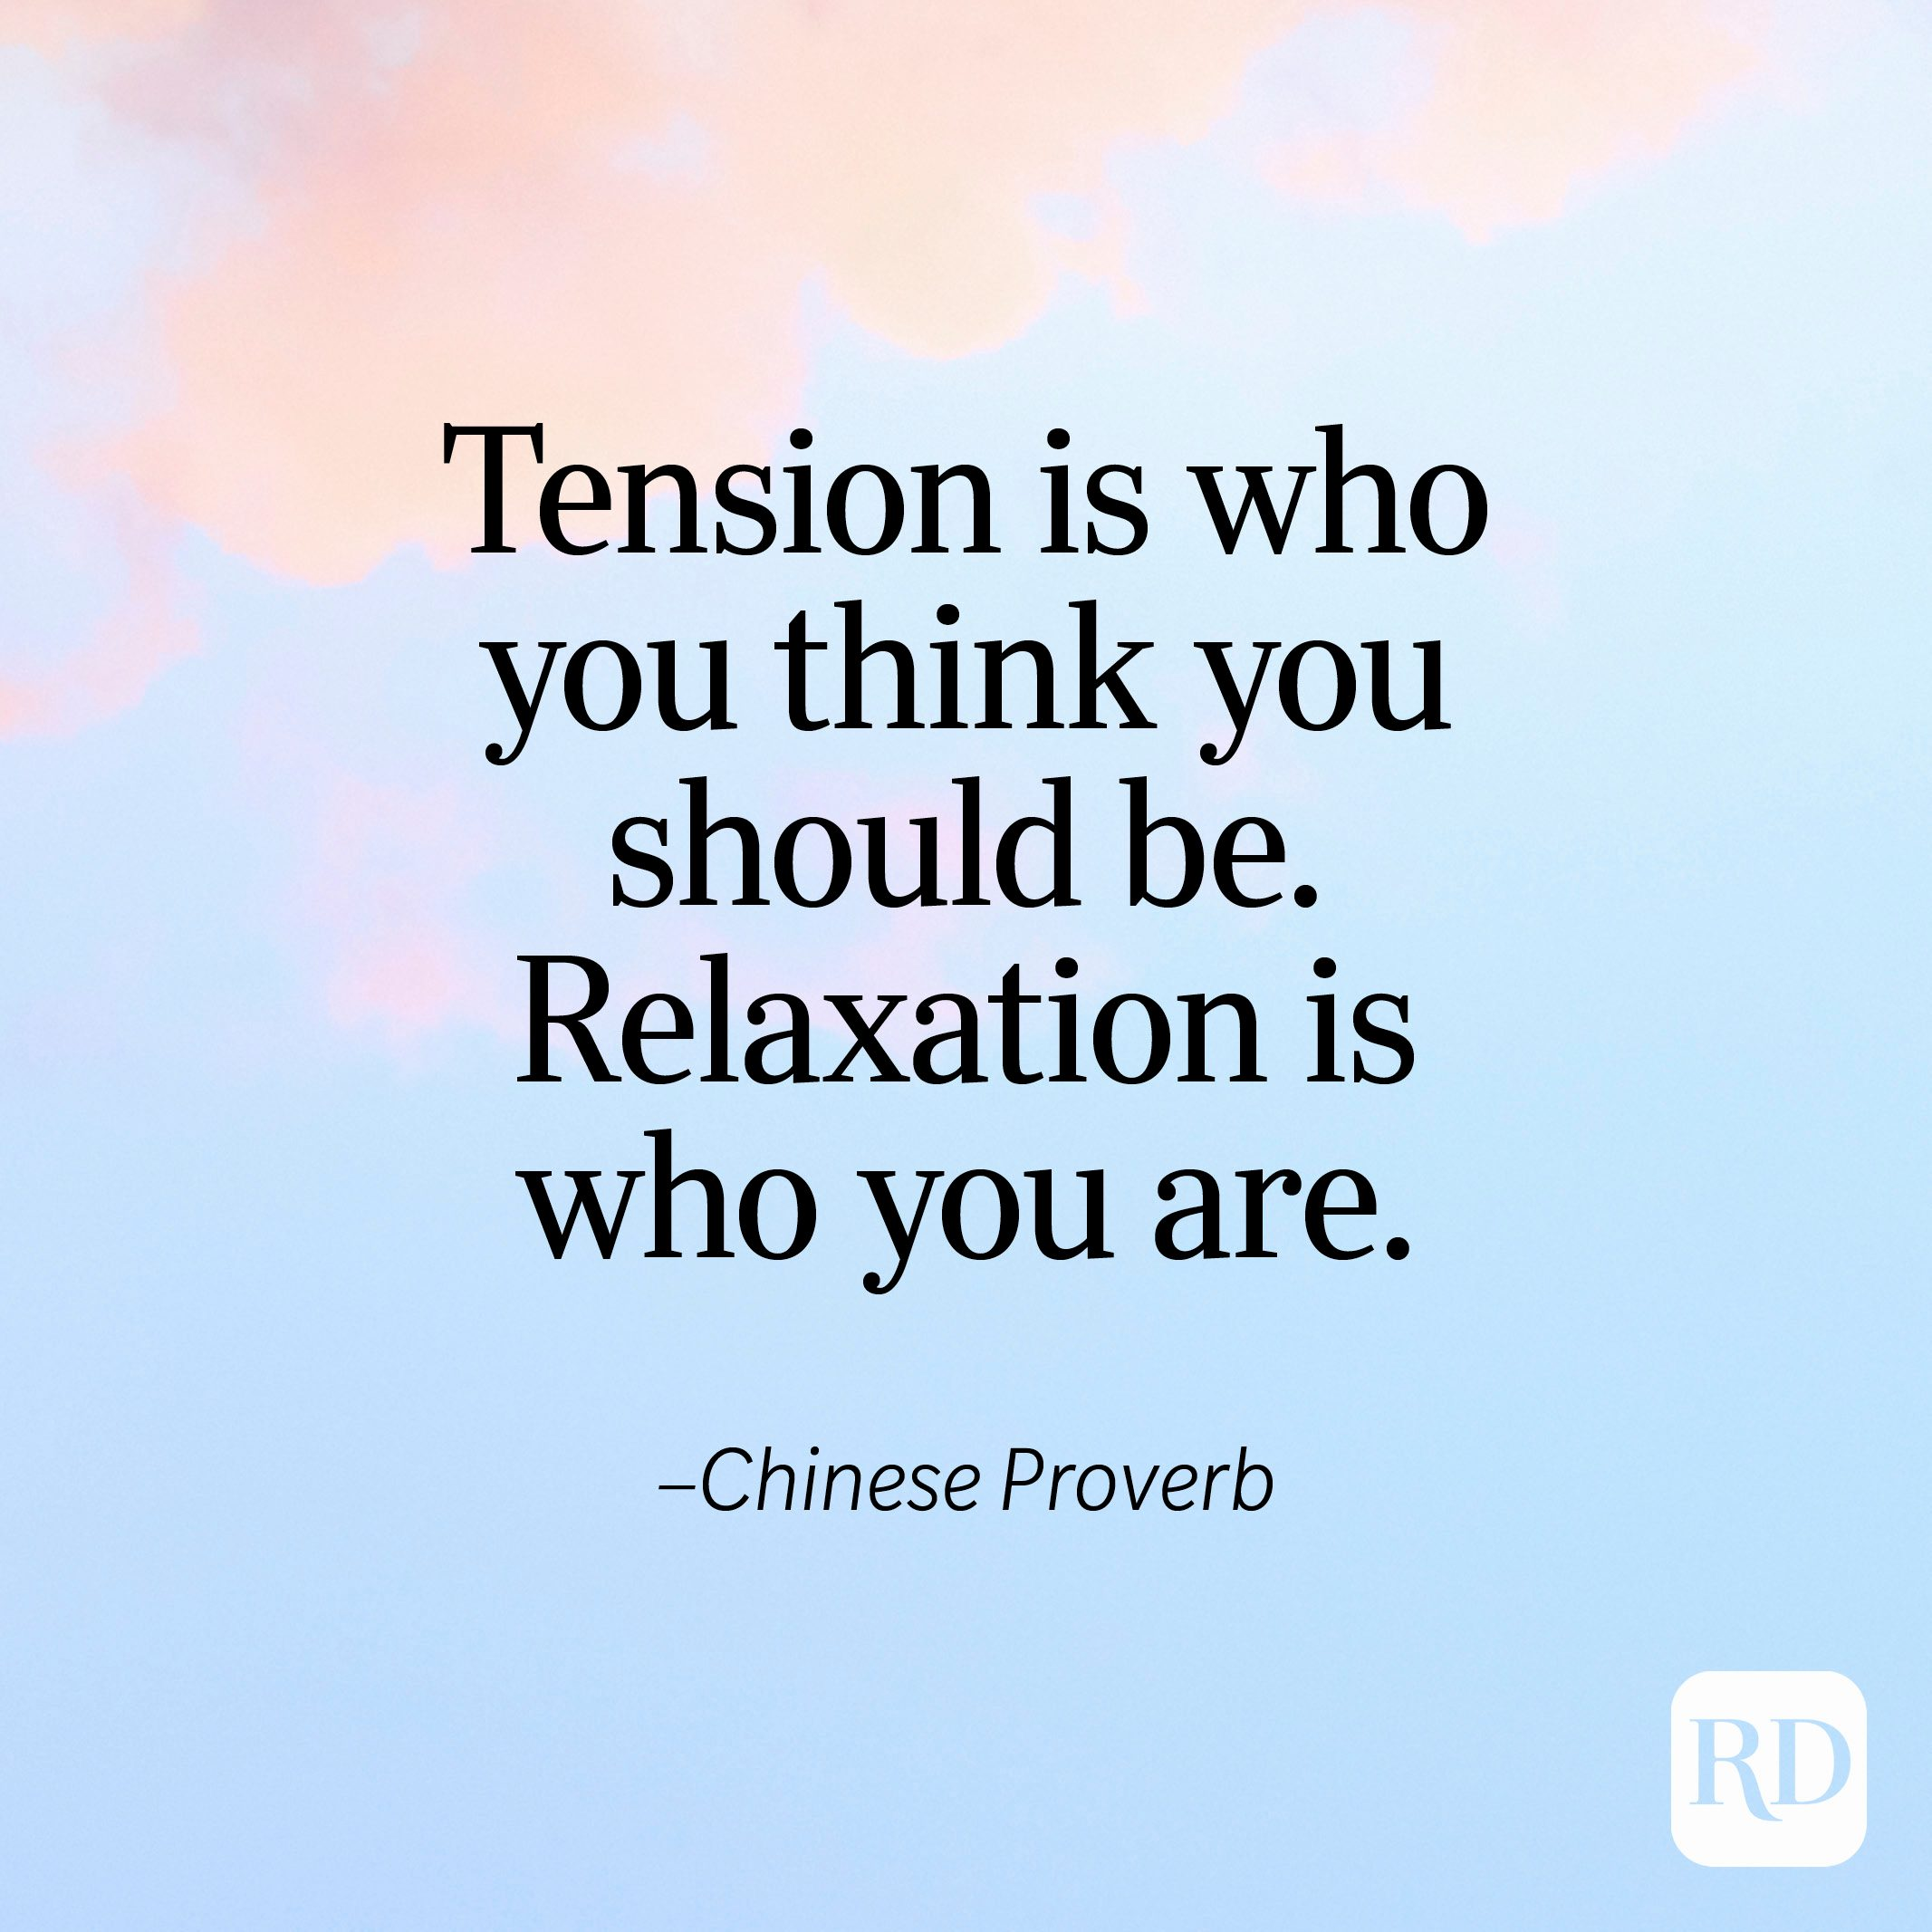 """""""Tension is who you think you should be. Relaxation is who you are."""" —Chinese Proverb"""